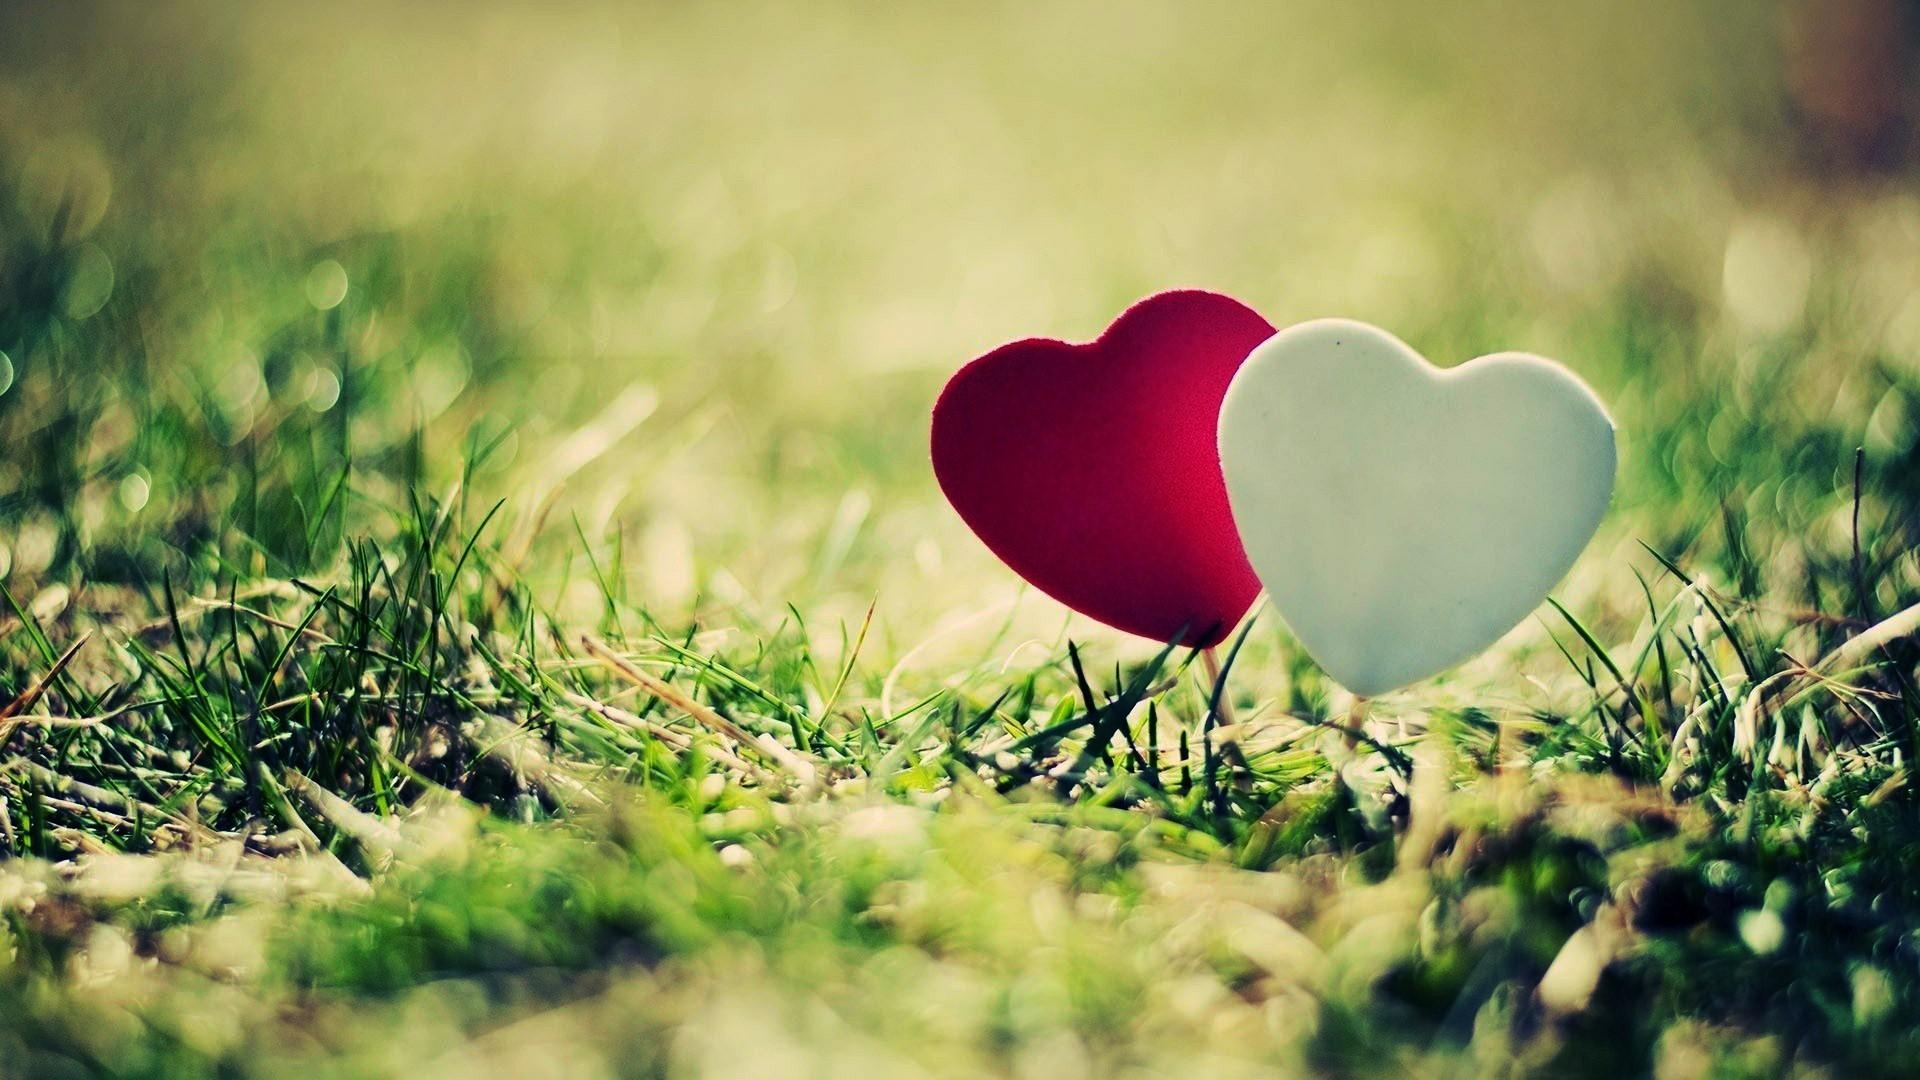 Download Hd Wallpapers Download Love Hd Backgrounds Download